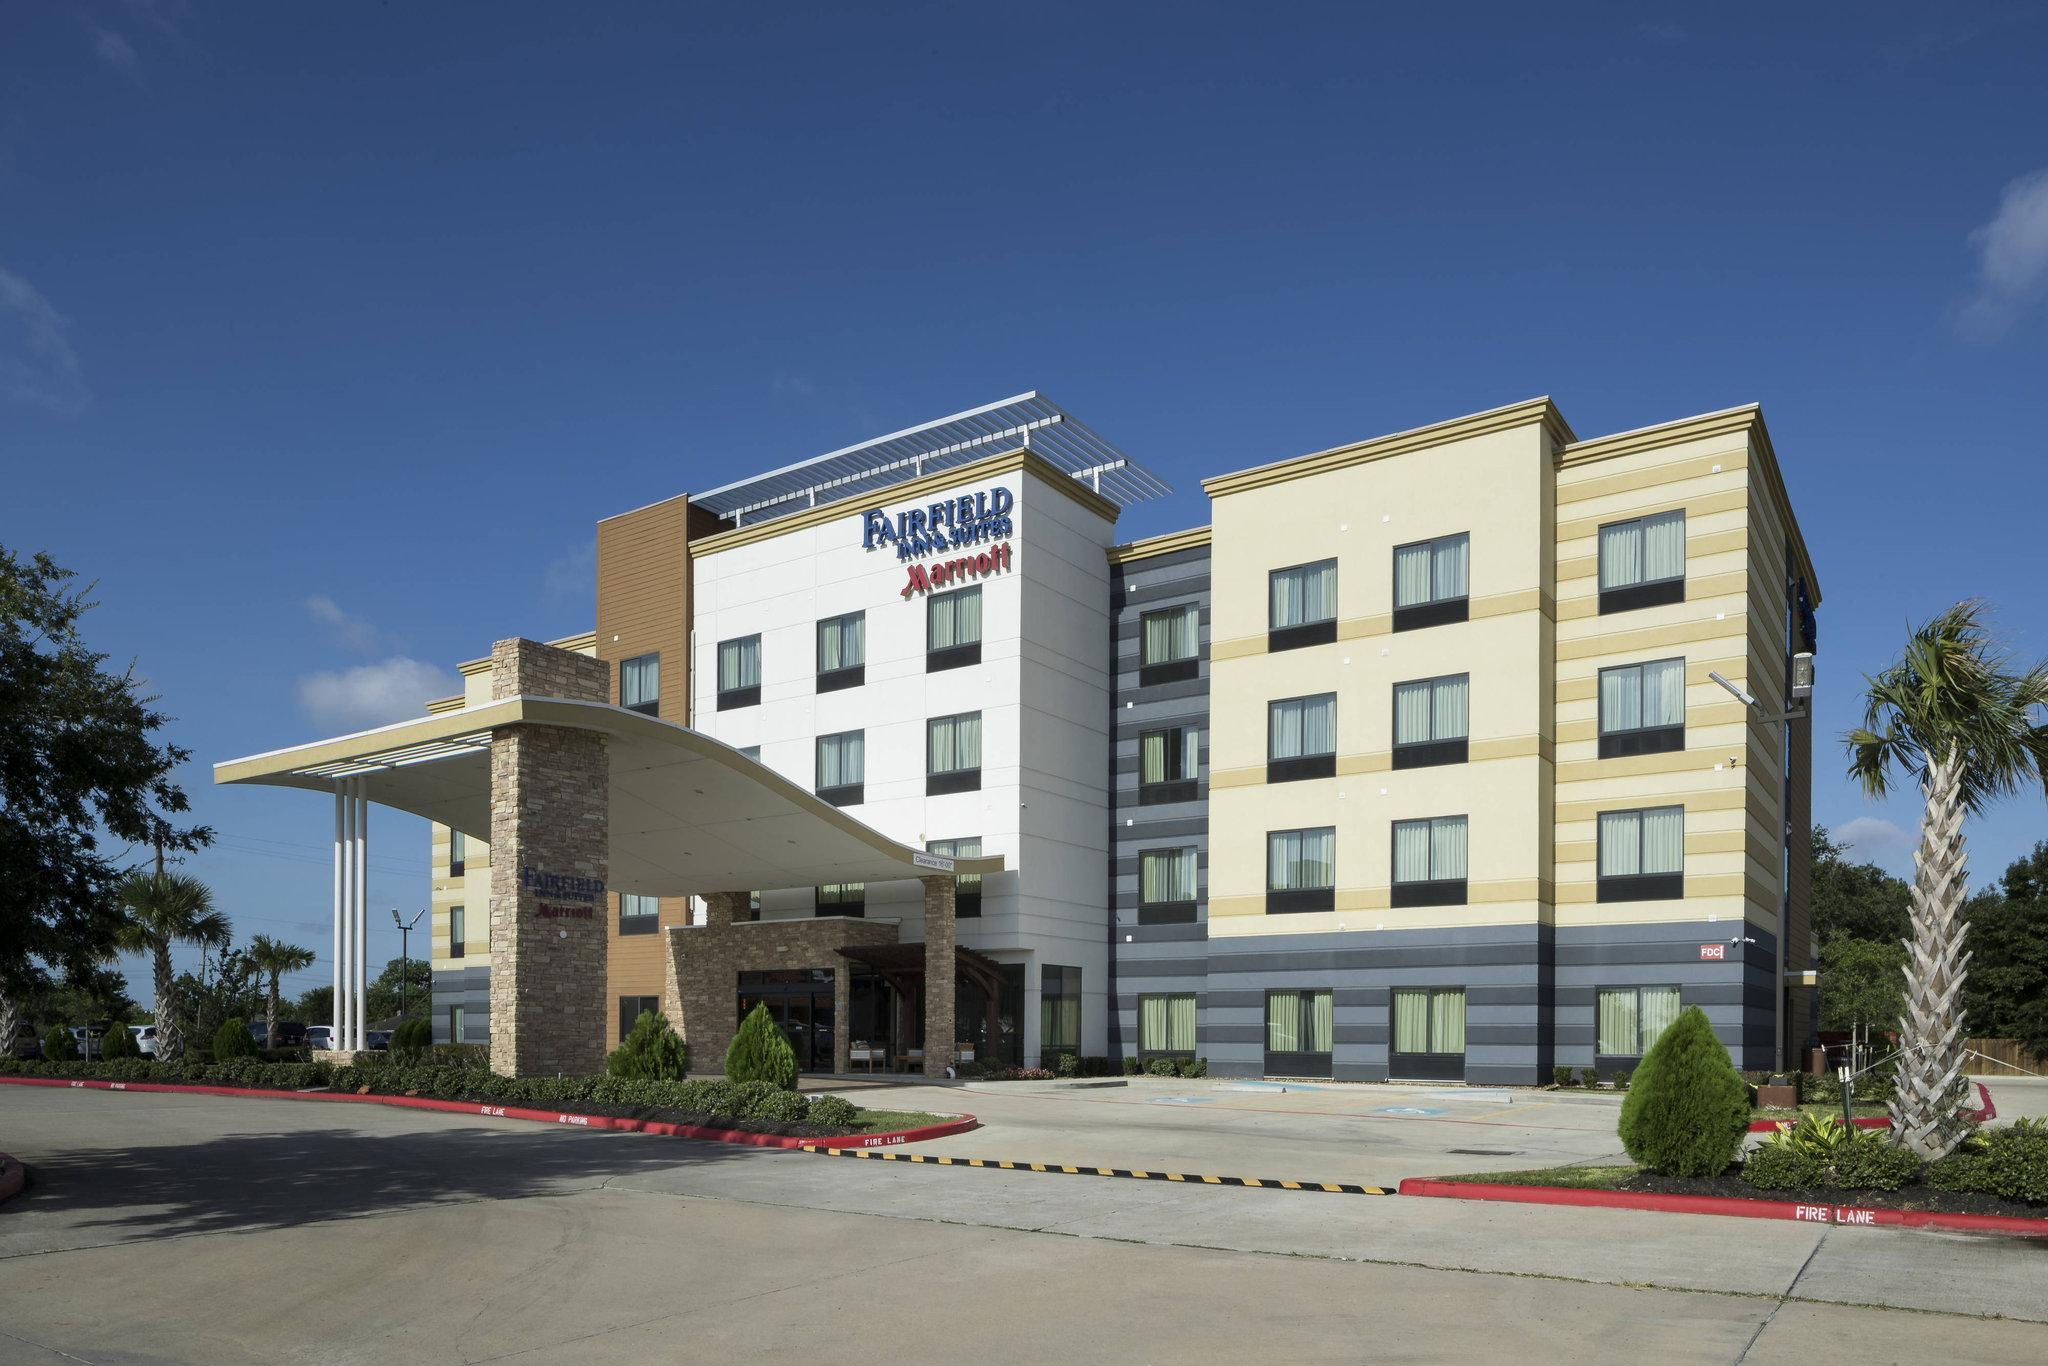 Fairfield Inn And Suites Houston Pasadena